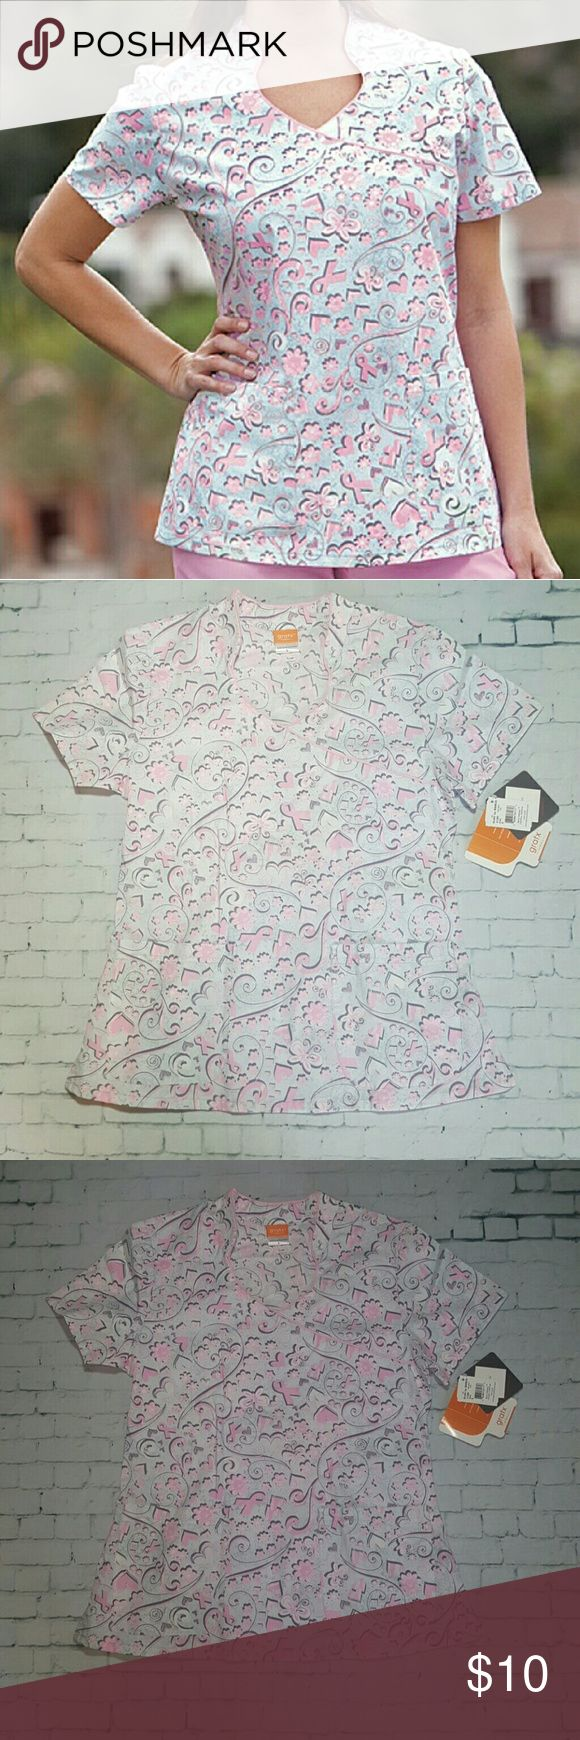 CLEARANCE Breast Cancer Awareness Scrub Top- S No holes or stains. More vibrant in person. Size small. Any 2 tops for $13.  Grafx/Barco Brand. 100% Cotton  Grey's Anatomy  Urbane HeartSoul  Iguana  Dickies Med Couture Cherokee  Koi Landau Barco Tops